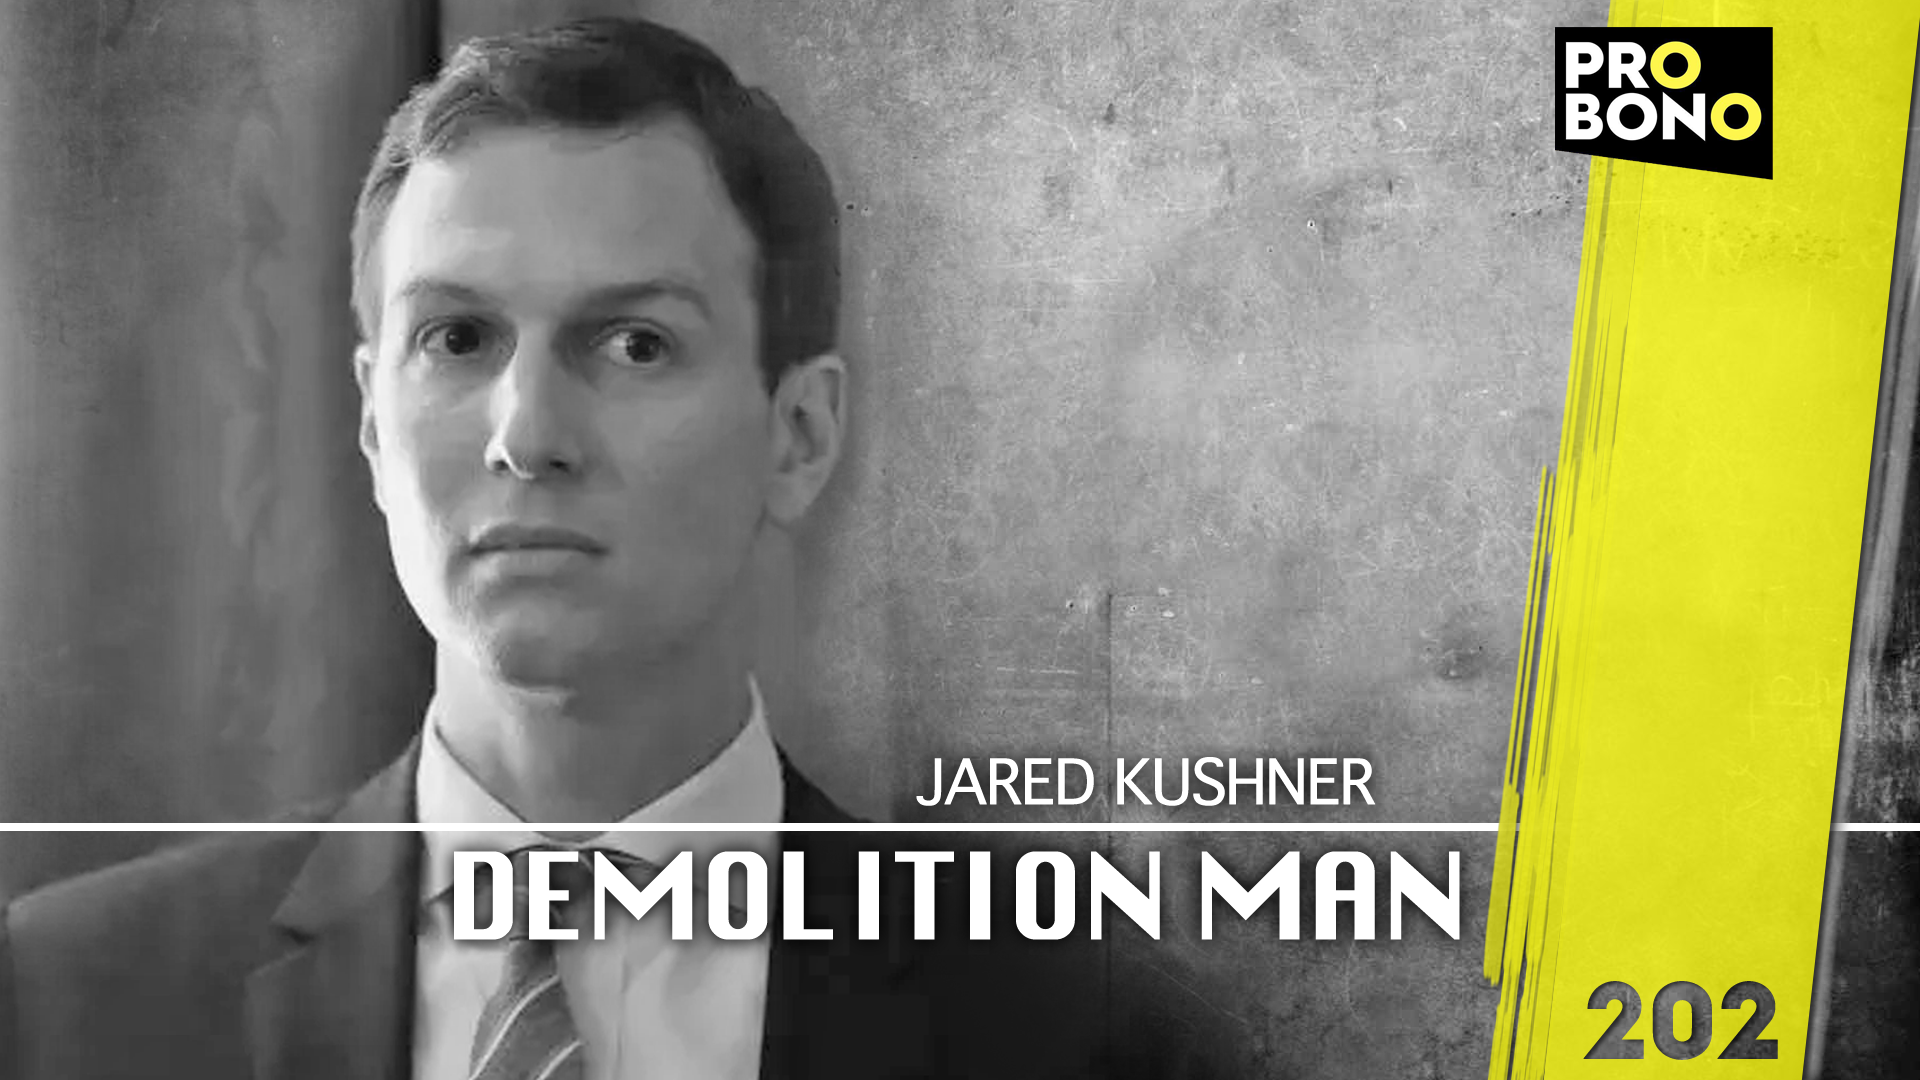 Jared Kushner – Der Demolition Man (probono Magazin)